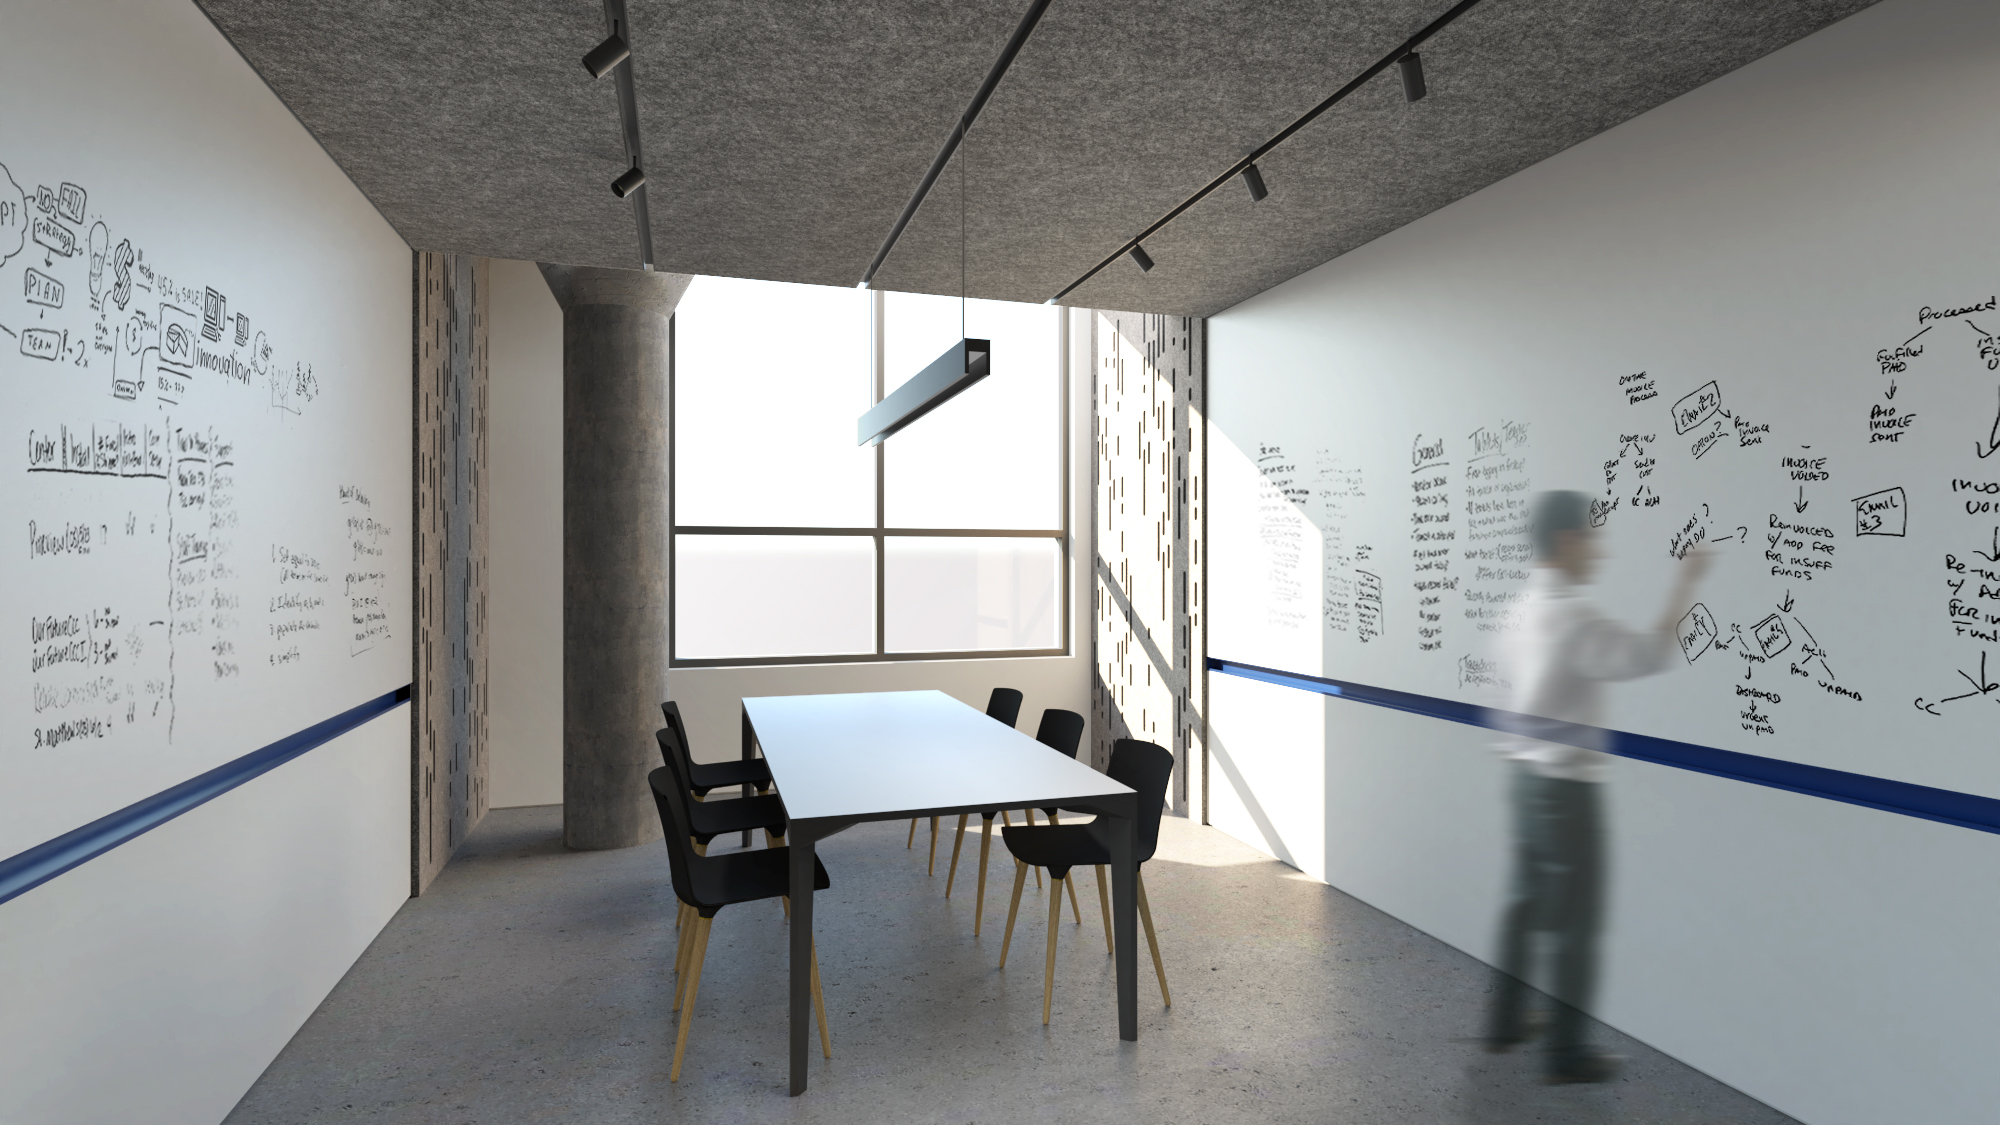 View of Conference Room - Commercial Interior Renovation